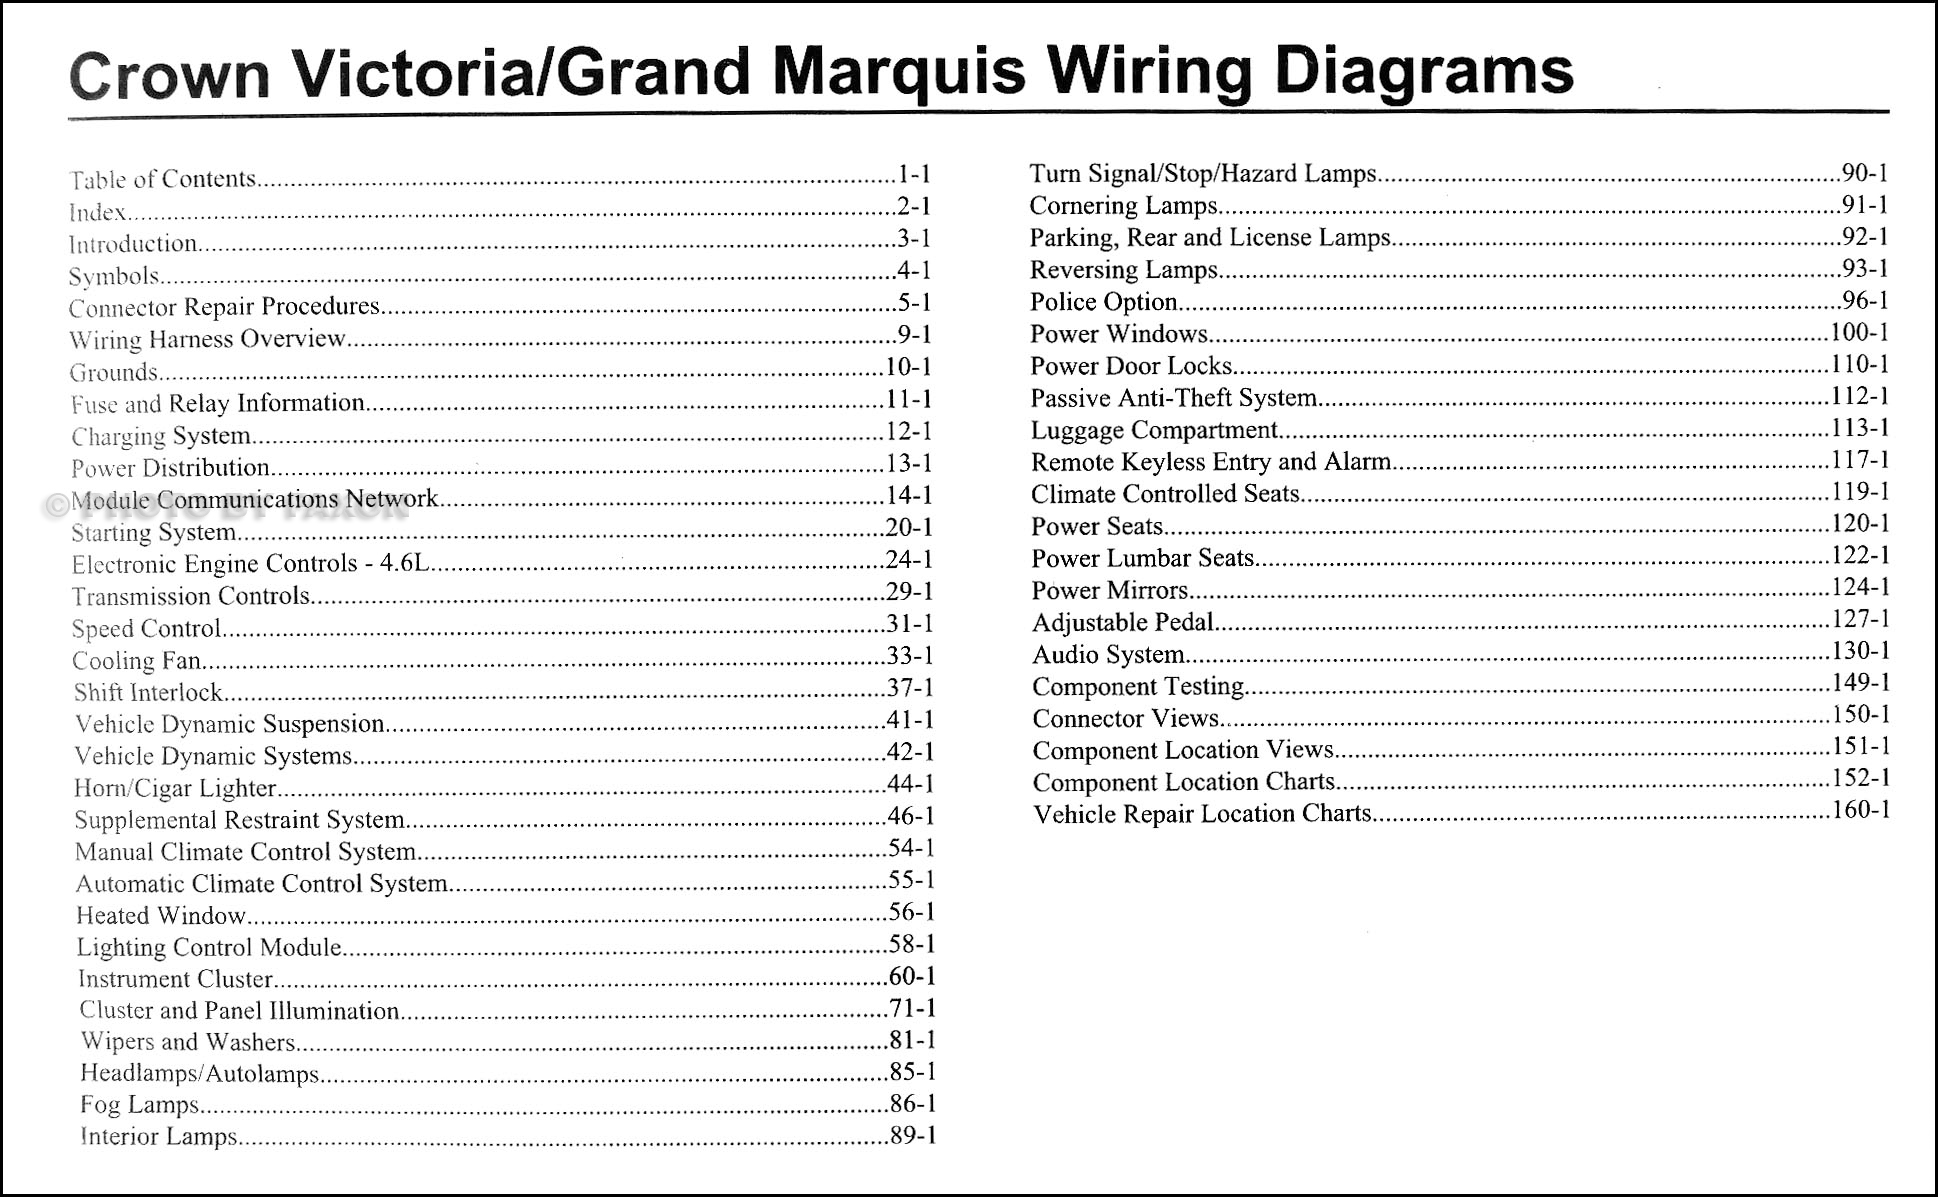 2009 Crown Victoria & Grand Marquis Original Wiring Diagram Manual · Table  of Contents